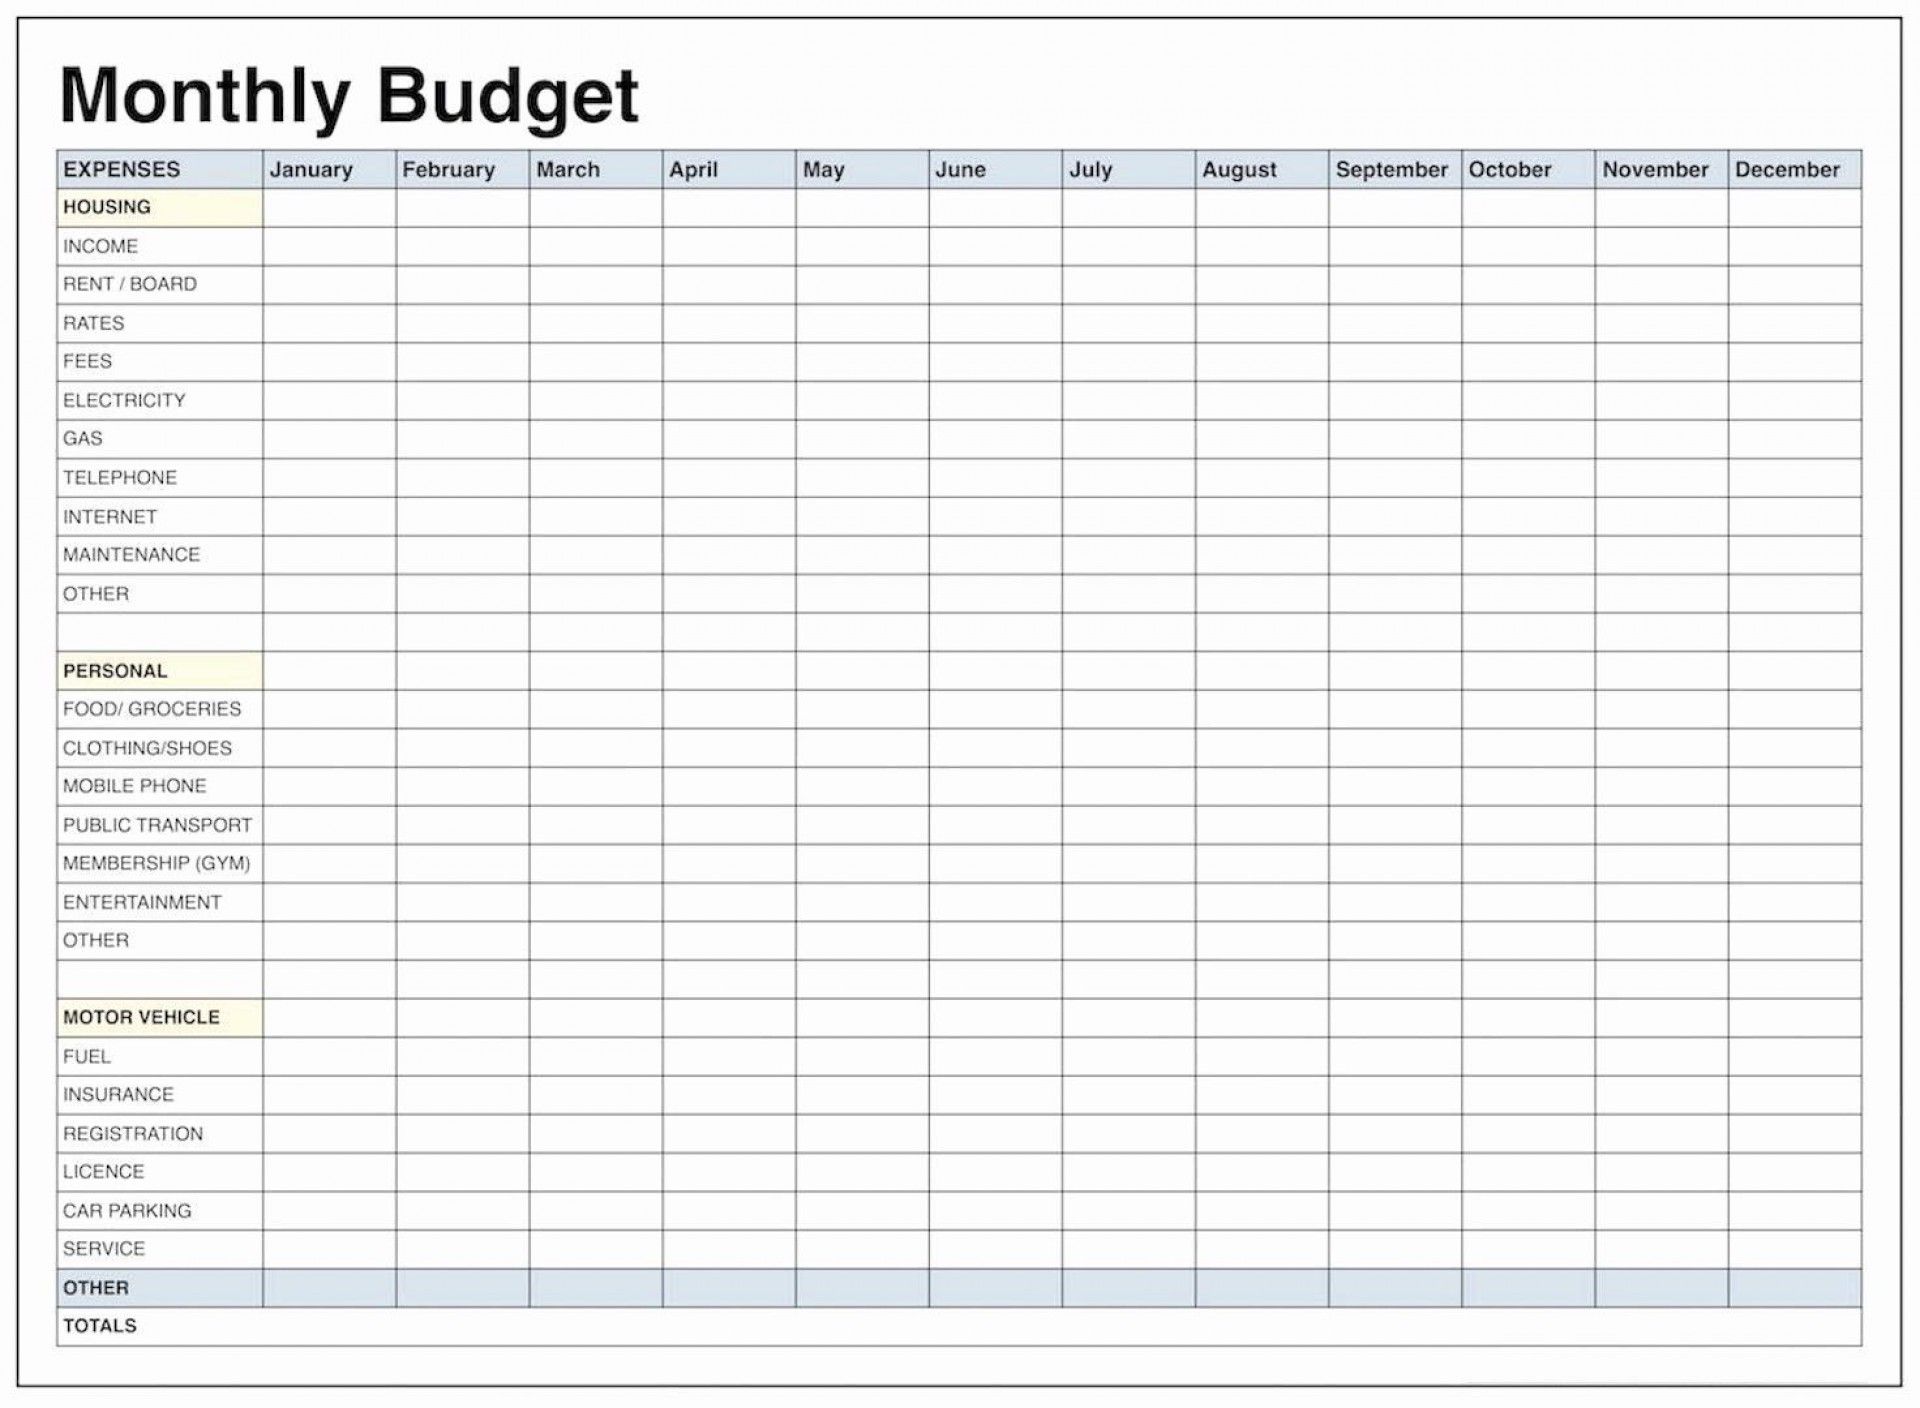 001 Marvelou Monthly Budget Excel Spreadsheet Template High Def  Sheet India Indian1920